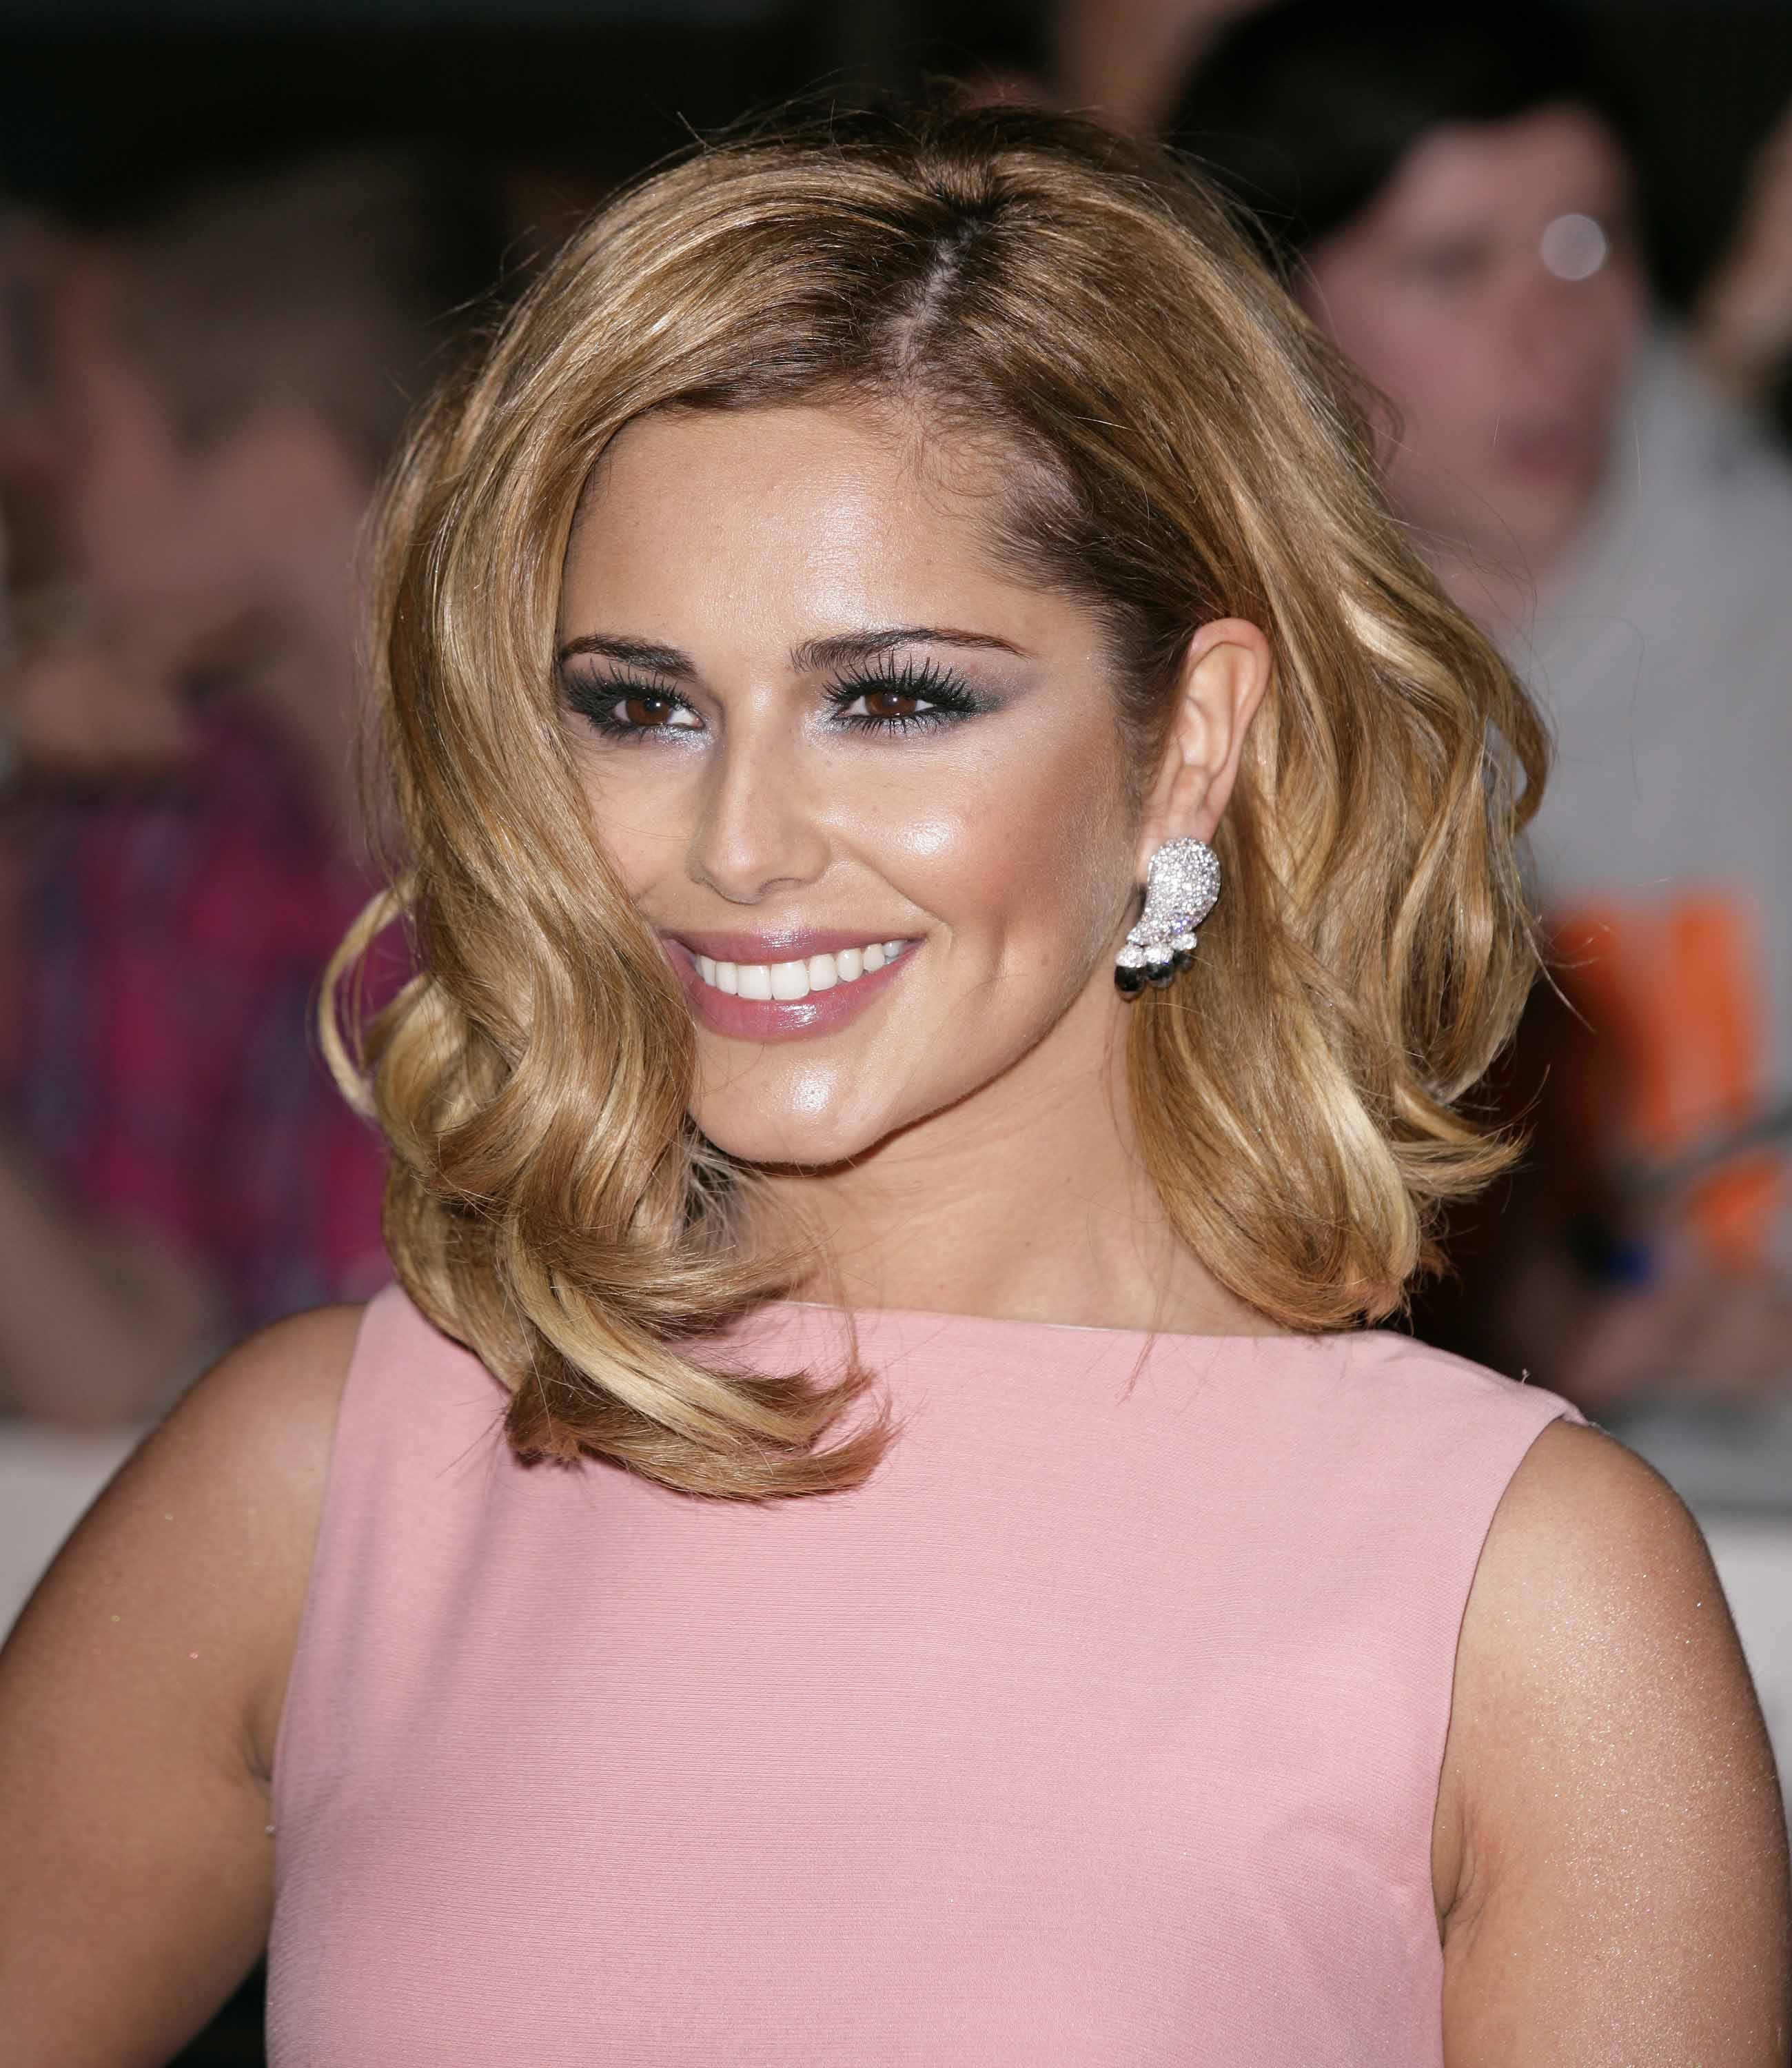 Brown hair with highlights: Cheryl Tweedy with curly warm bronde highlighted hair, wearing a pink dress